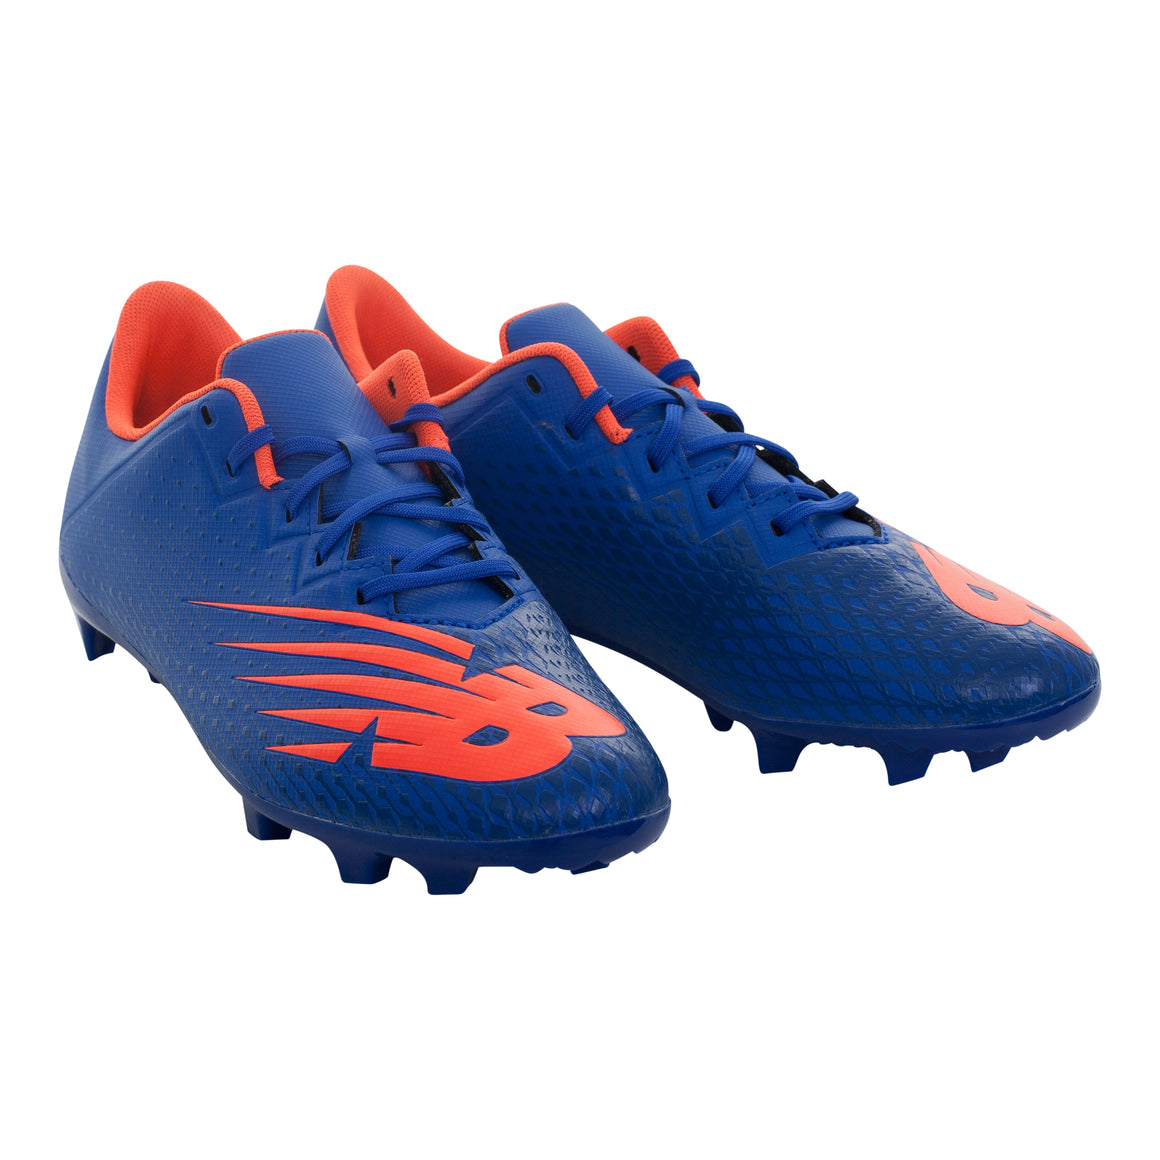 Junior FG Football Boots for Kids in Royal & Orange